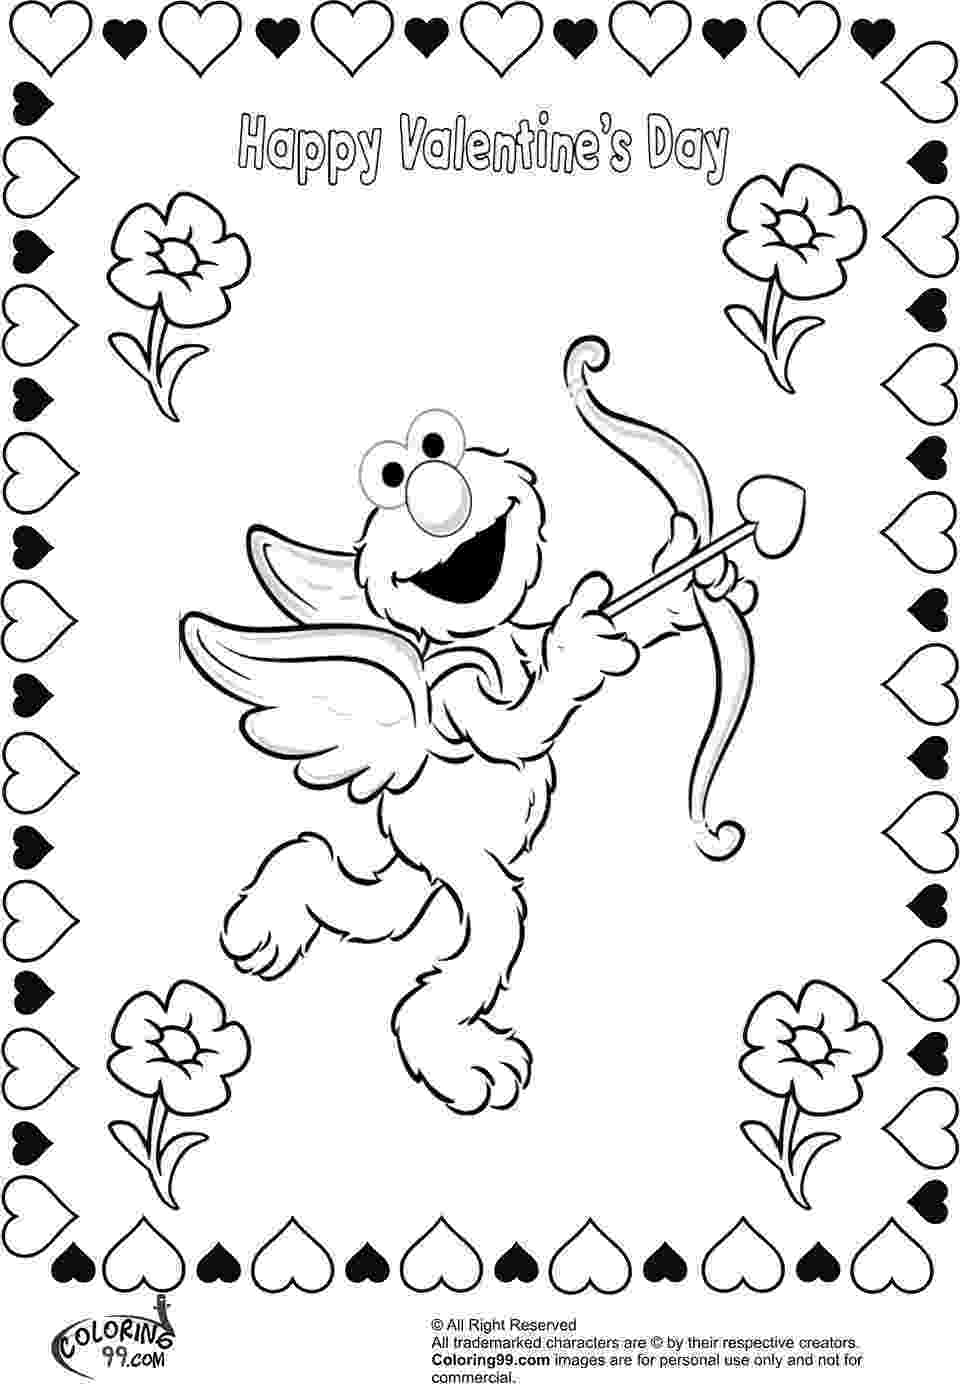 valentines day coloring sheets valentine39s day coloring pages gtgt disney coloring pages day sheets coloring valentines